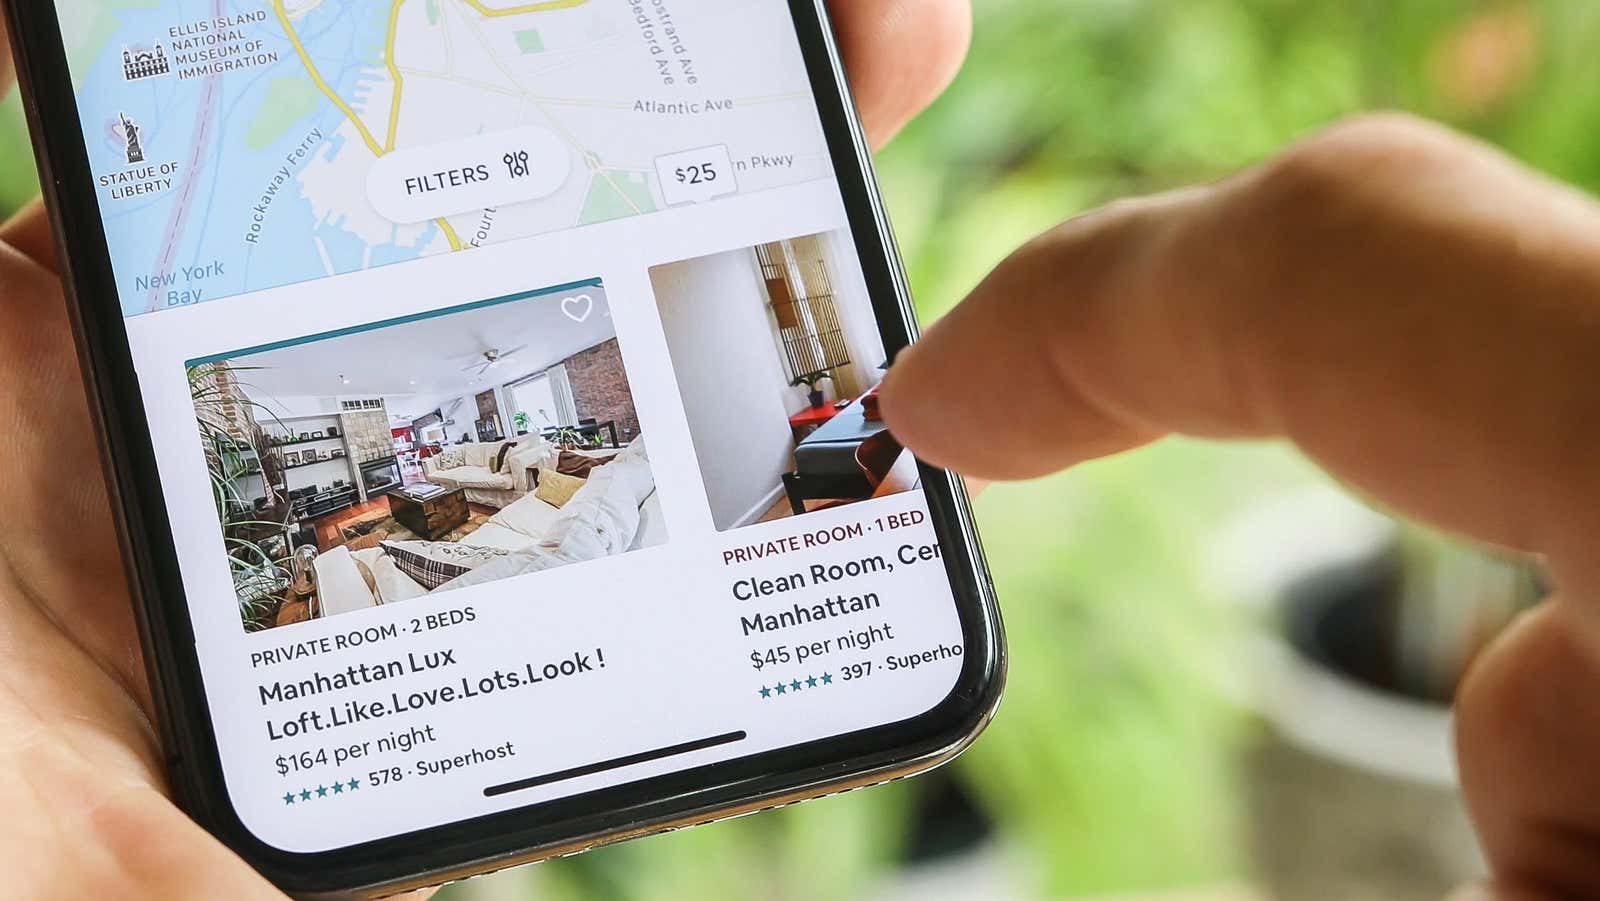 Why Airbnb Isn't Worth All Those Fees, According to Reddit